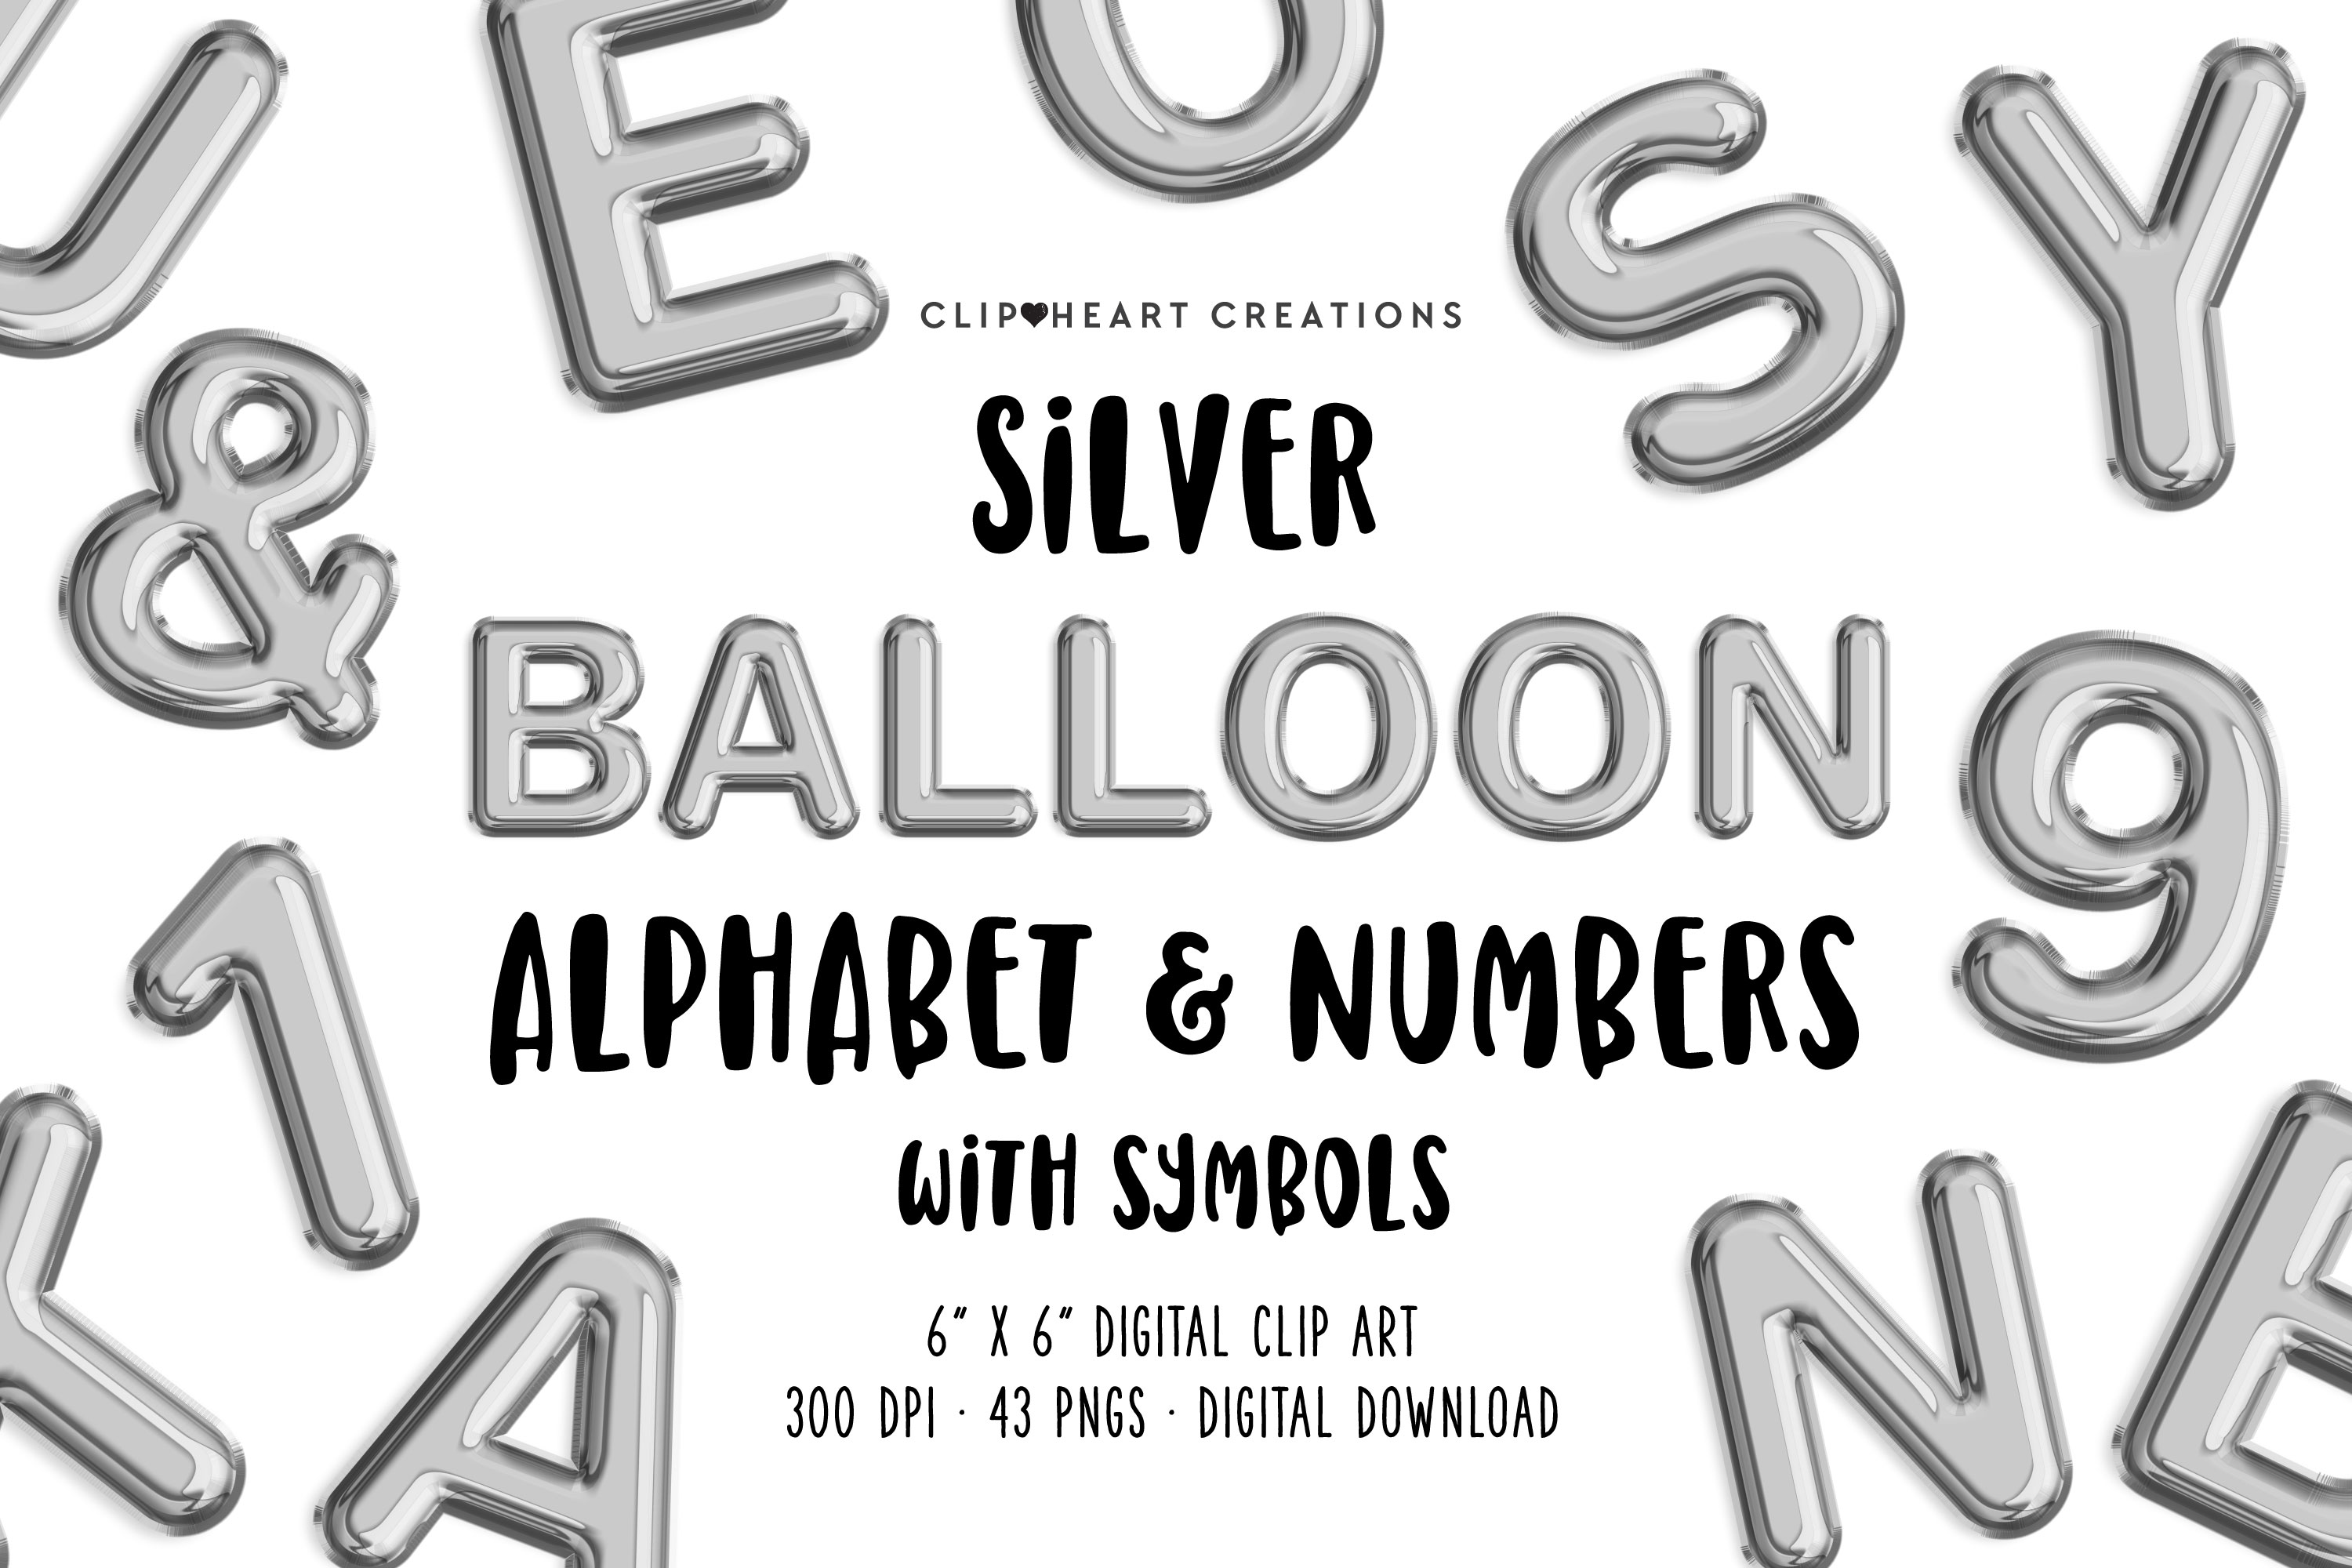 Silver Foil Balloon Alphabet & Numbers example image 1